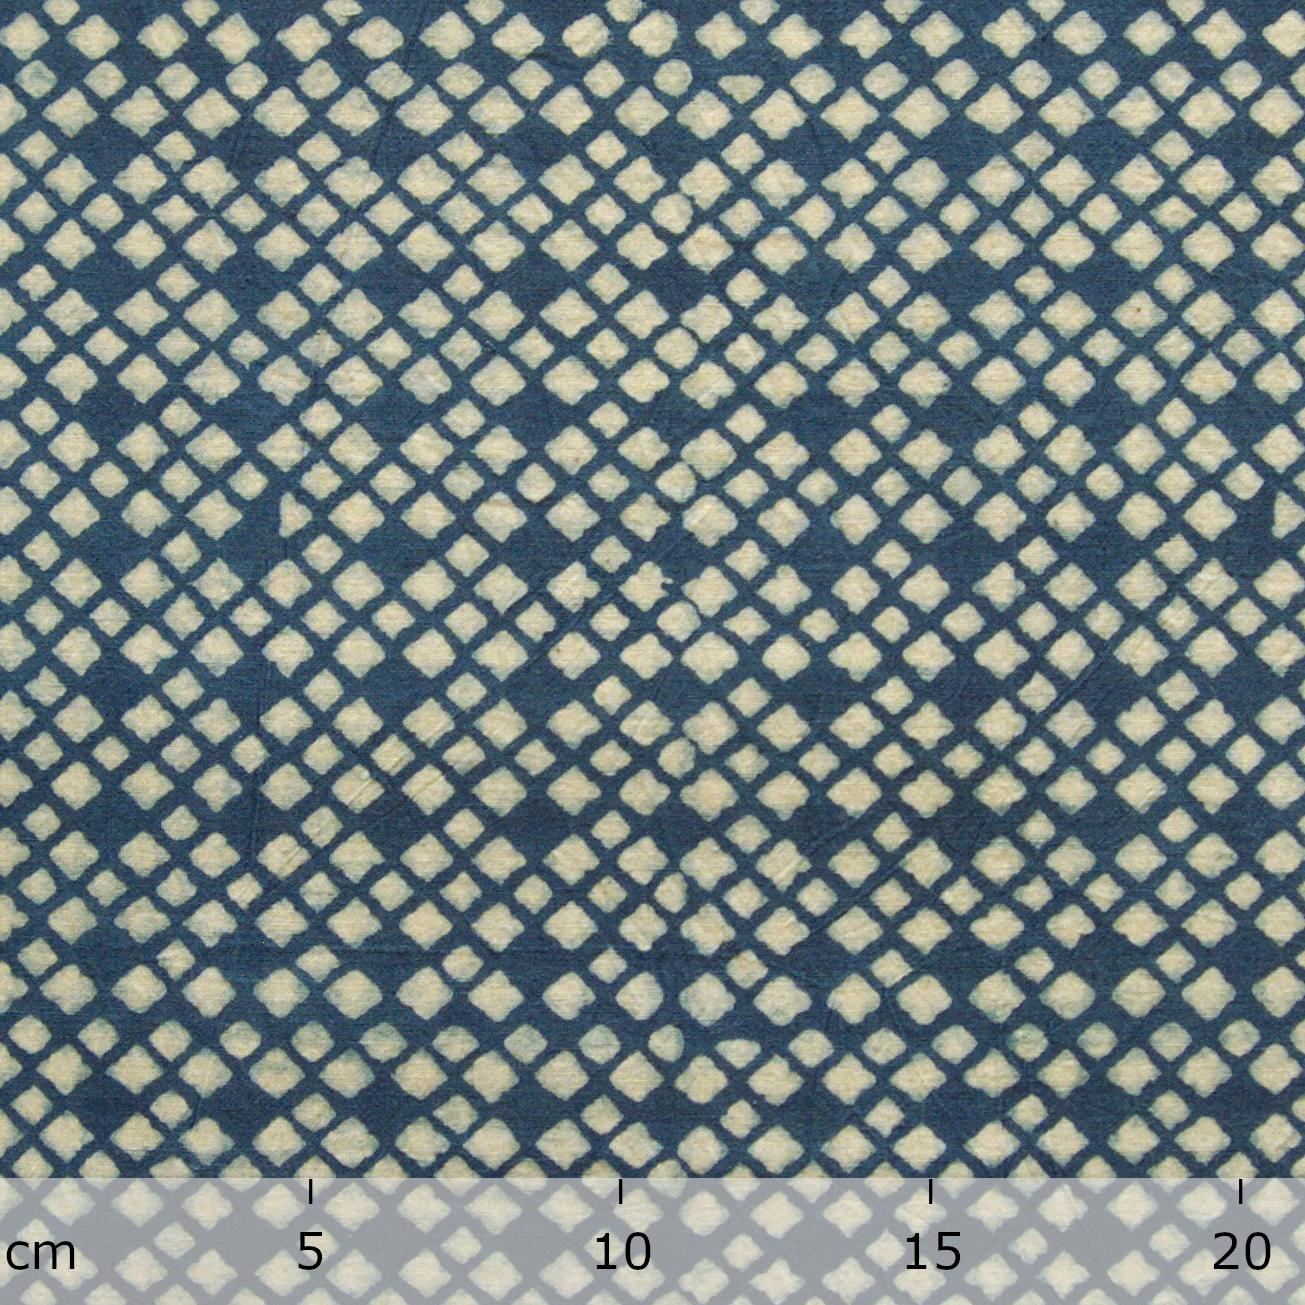 SIK28 - Indian Woodblock-Printed Cotton Fabric - Mosaic Design - Indigo Dye - Ruler